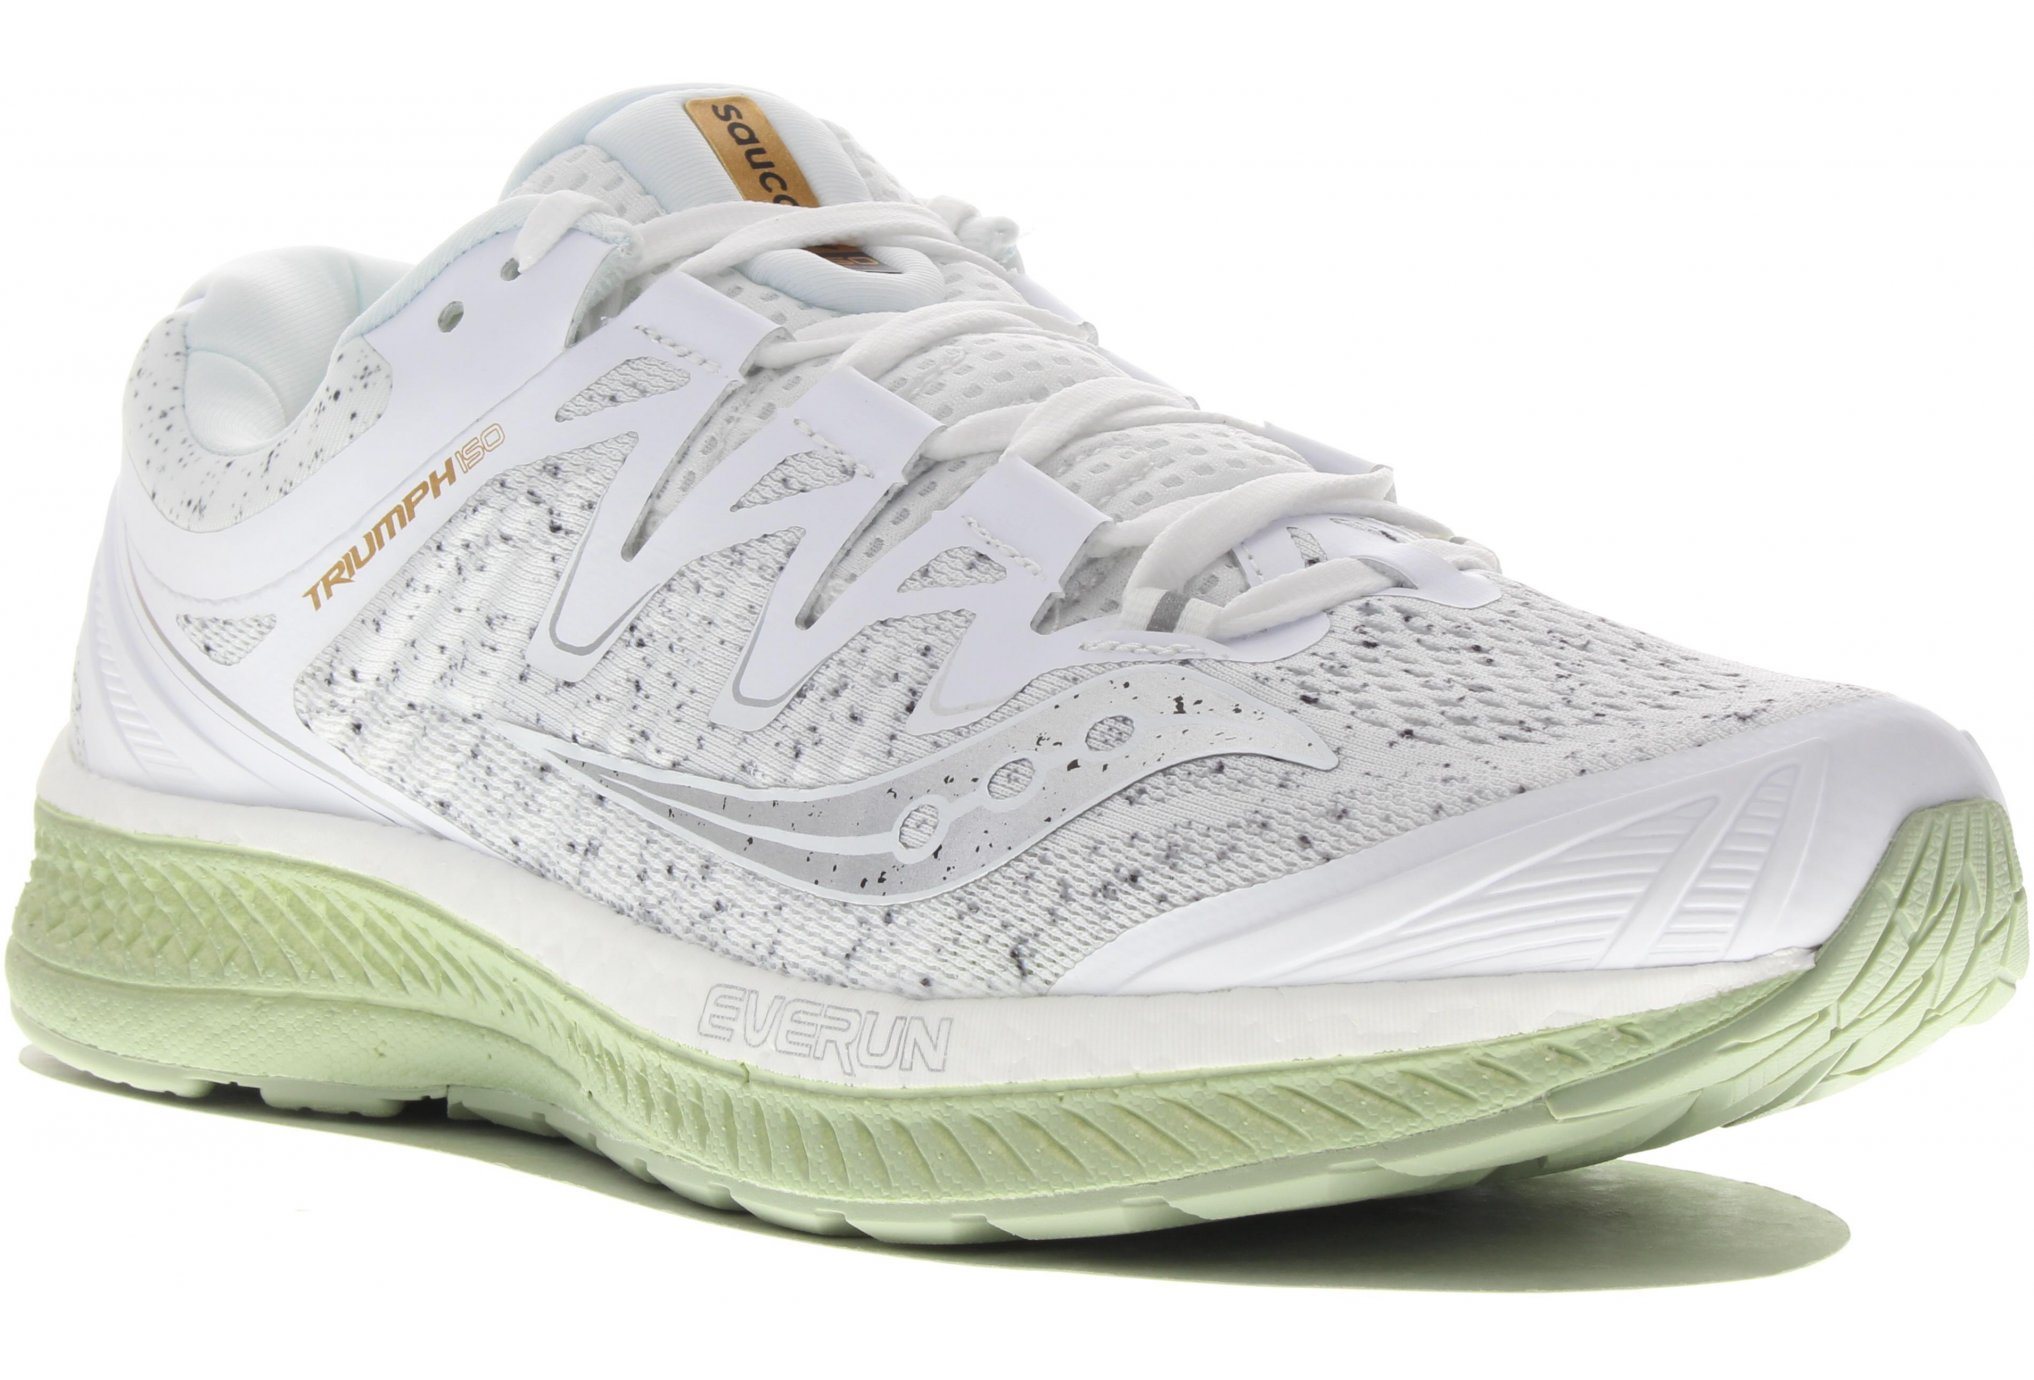 saucony-triumph-iso-4-white-noise-m-chaussures-homme-243914-1-fz